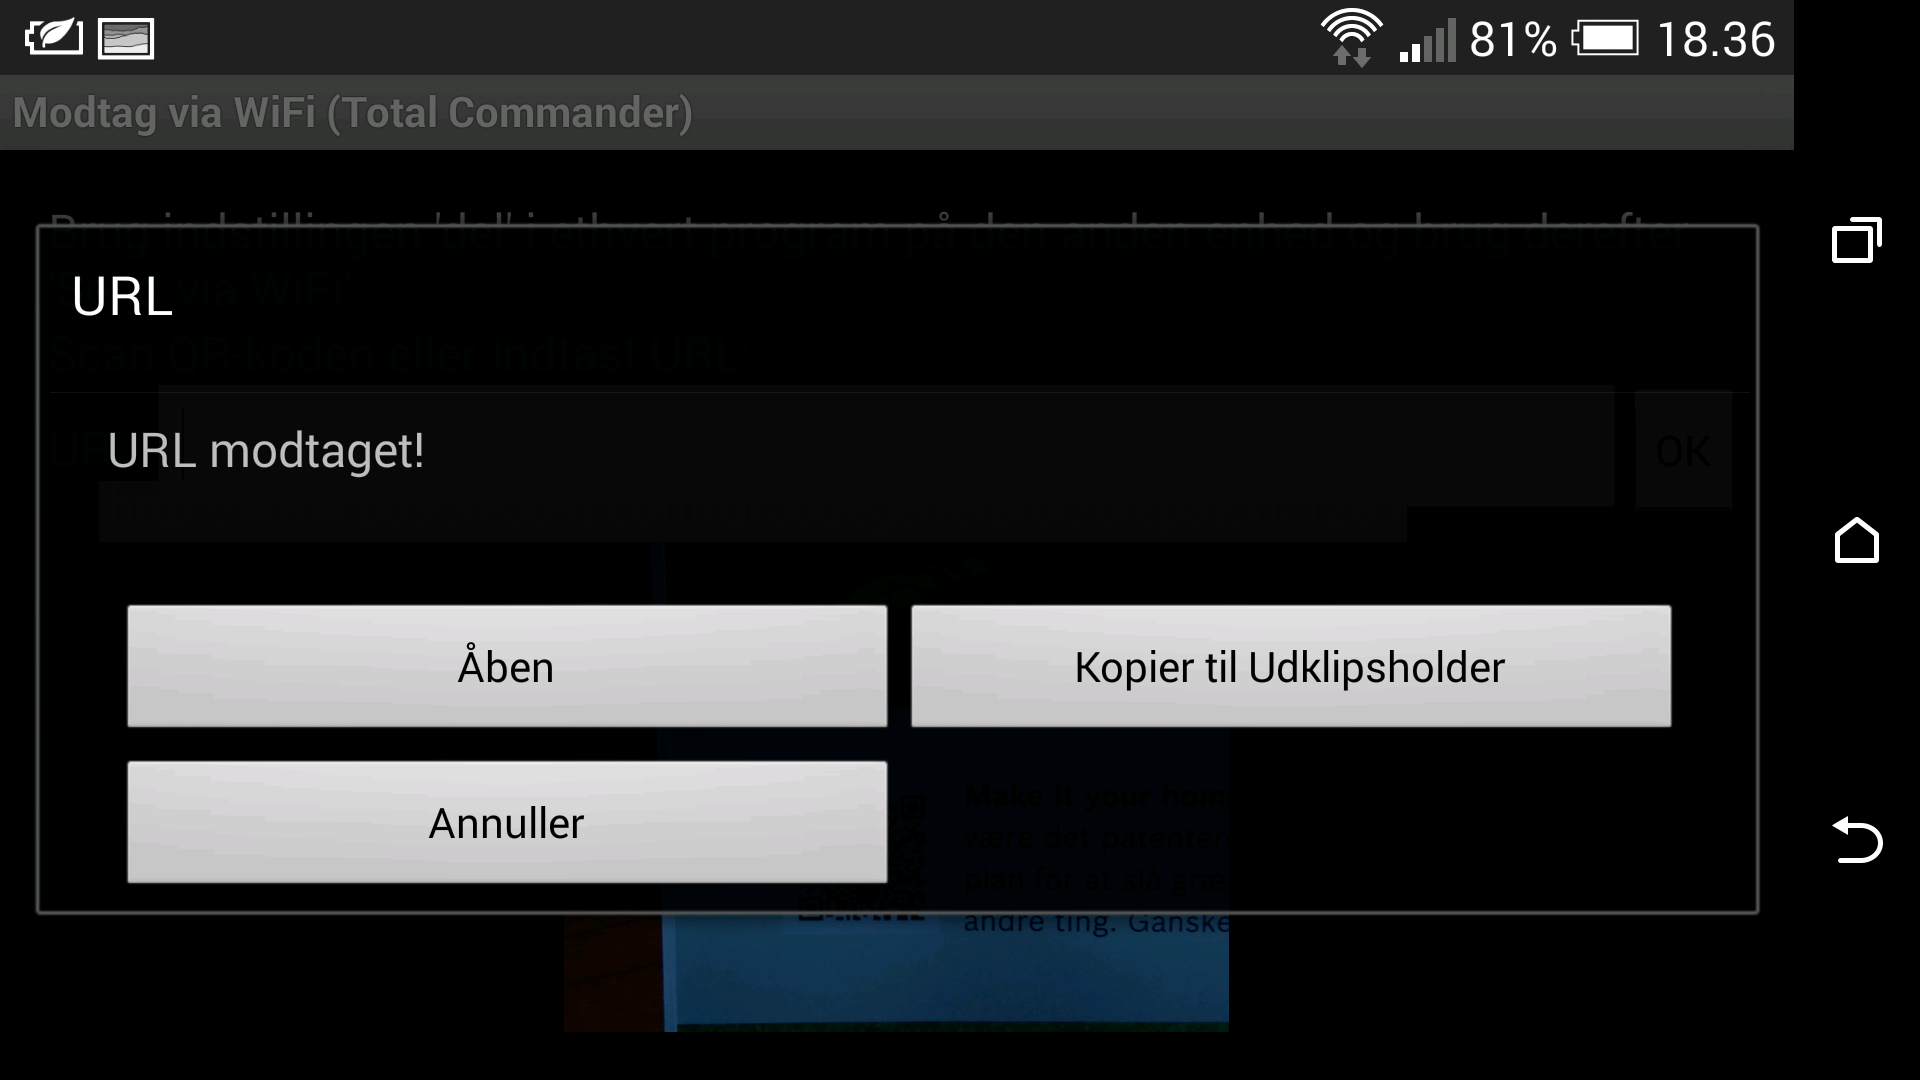 New Android plugin - Wifi transfer - Total Commander